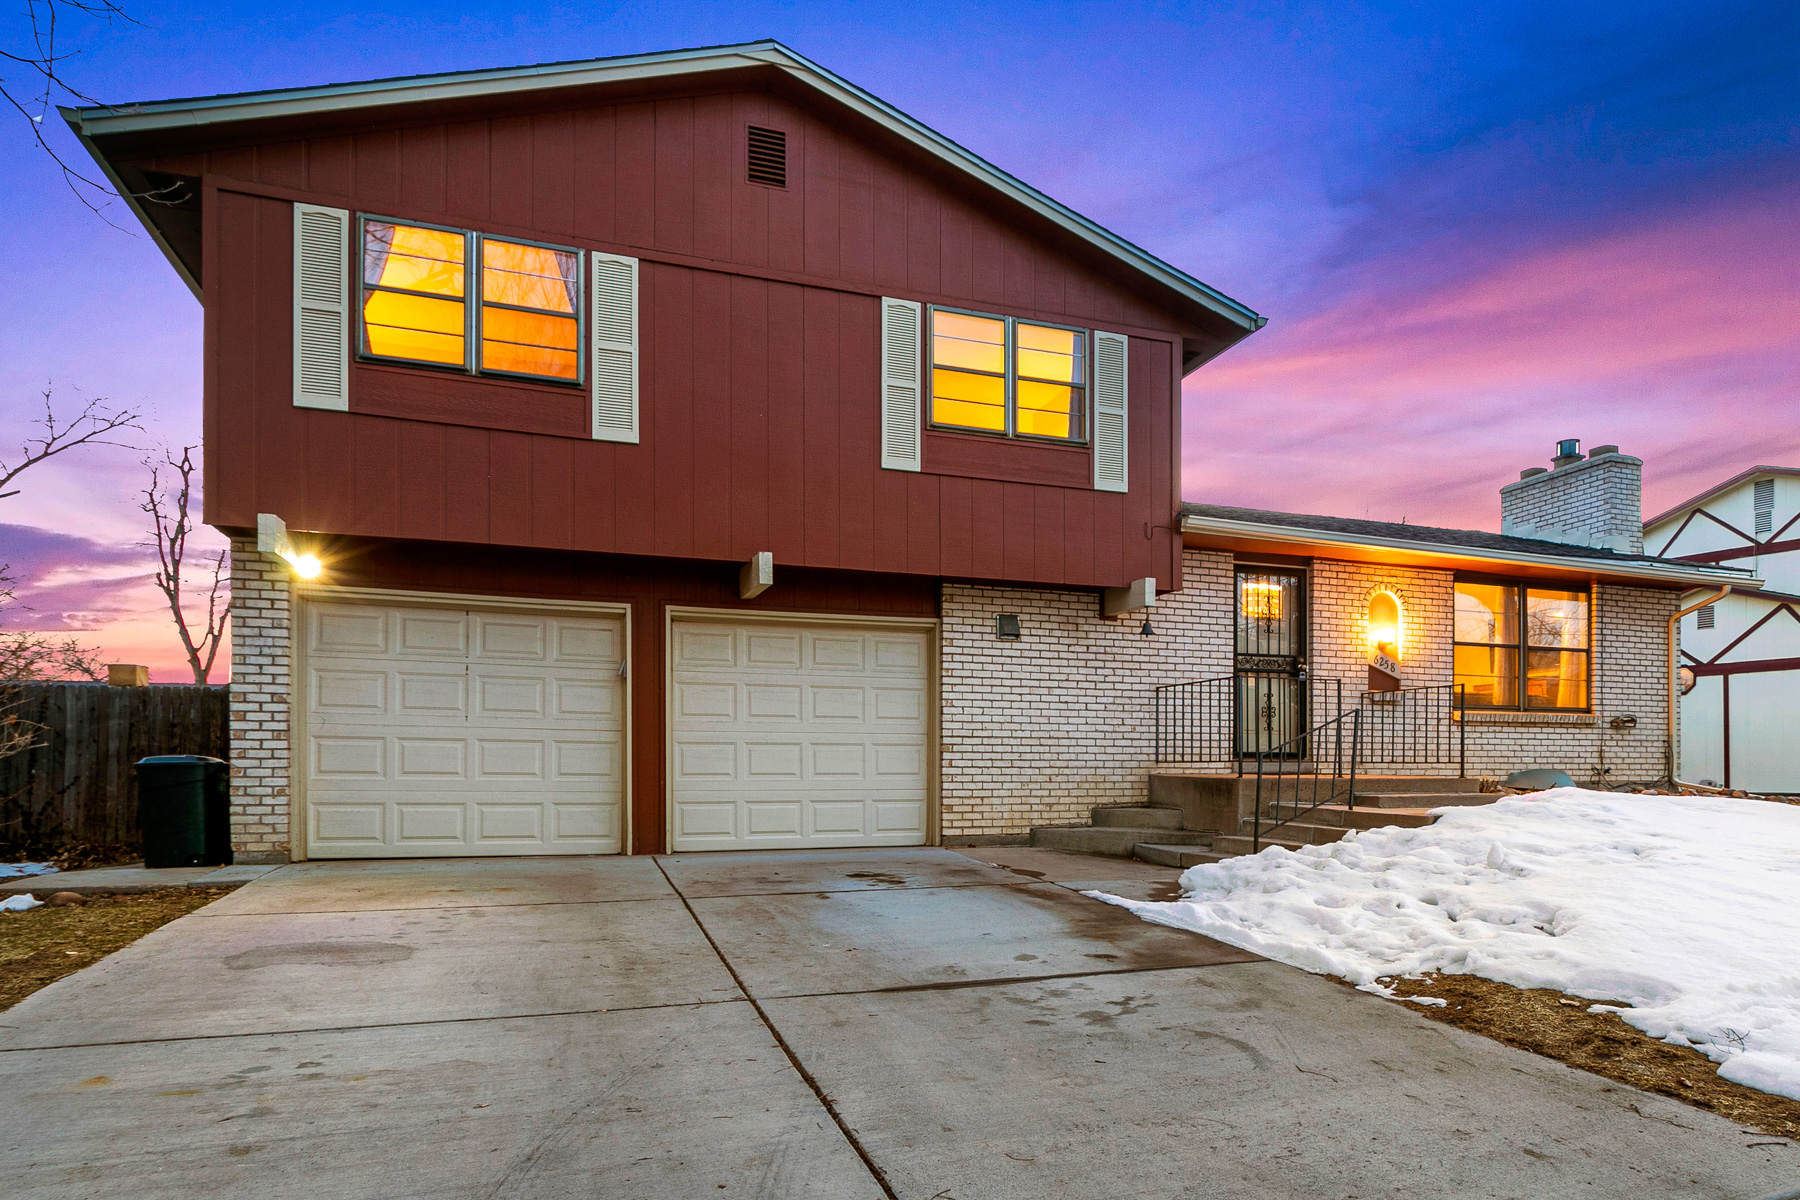 6258 W 84th Ave, Arvada, CO 80003